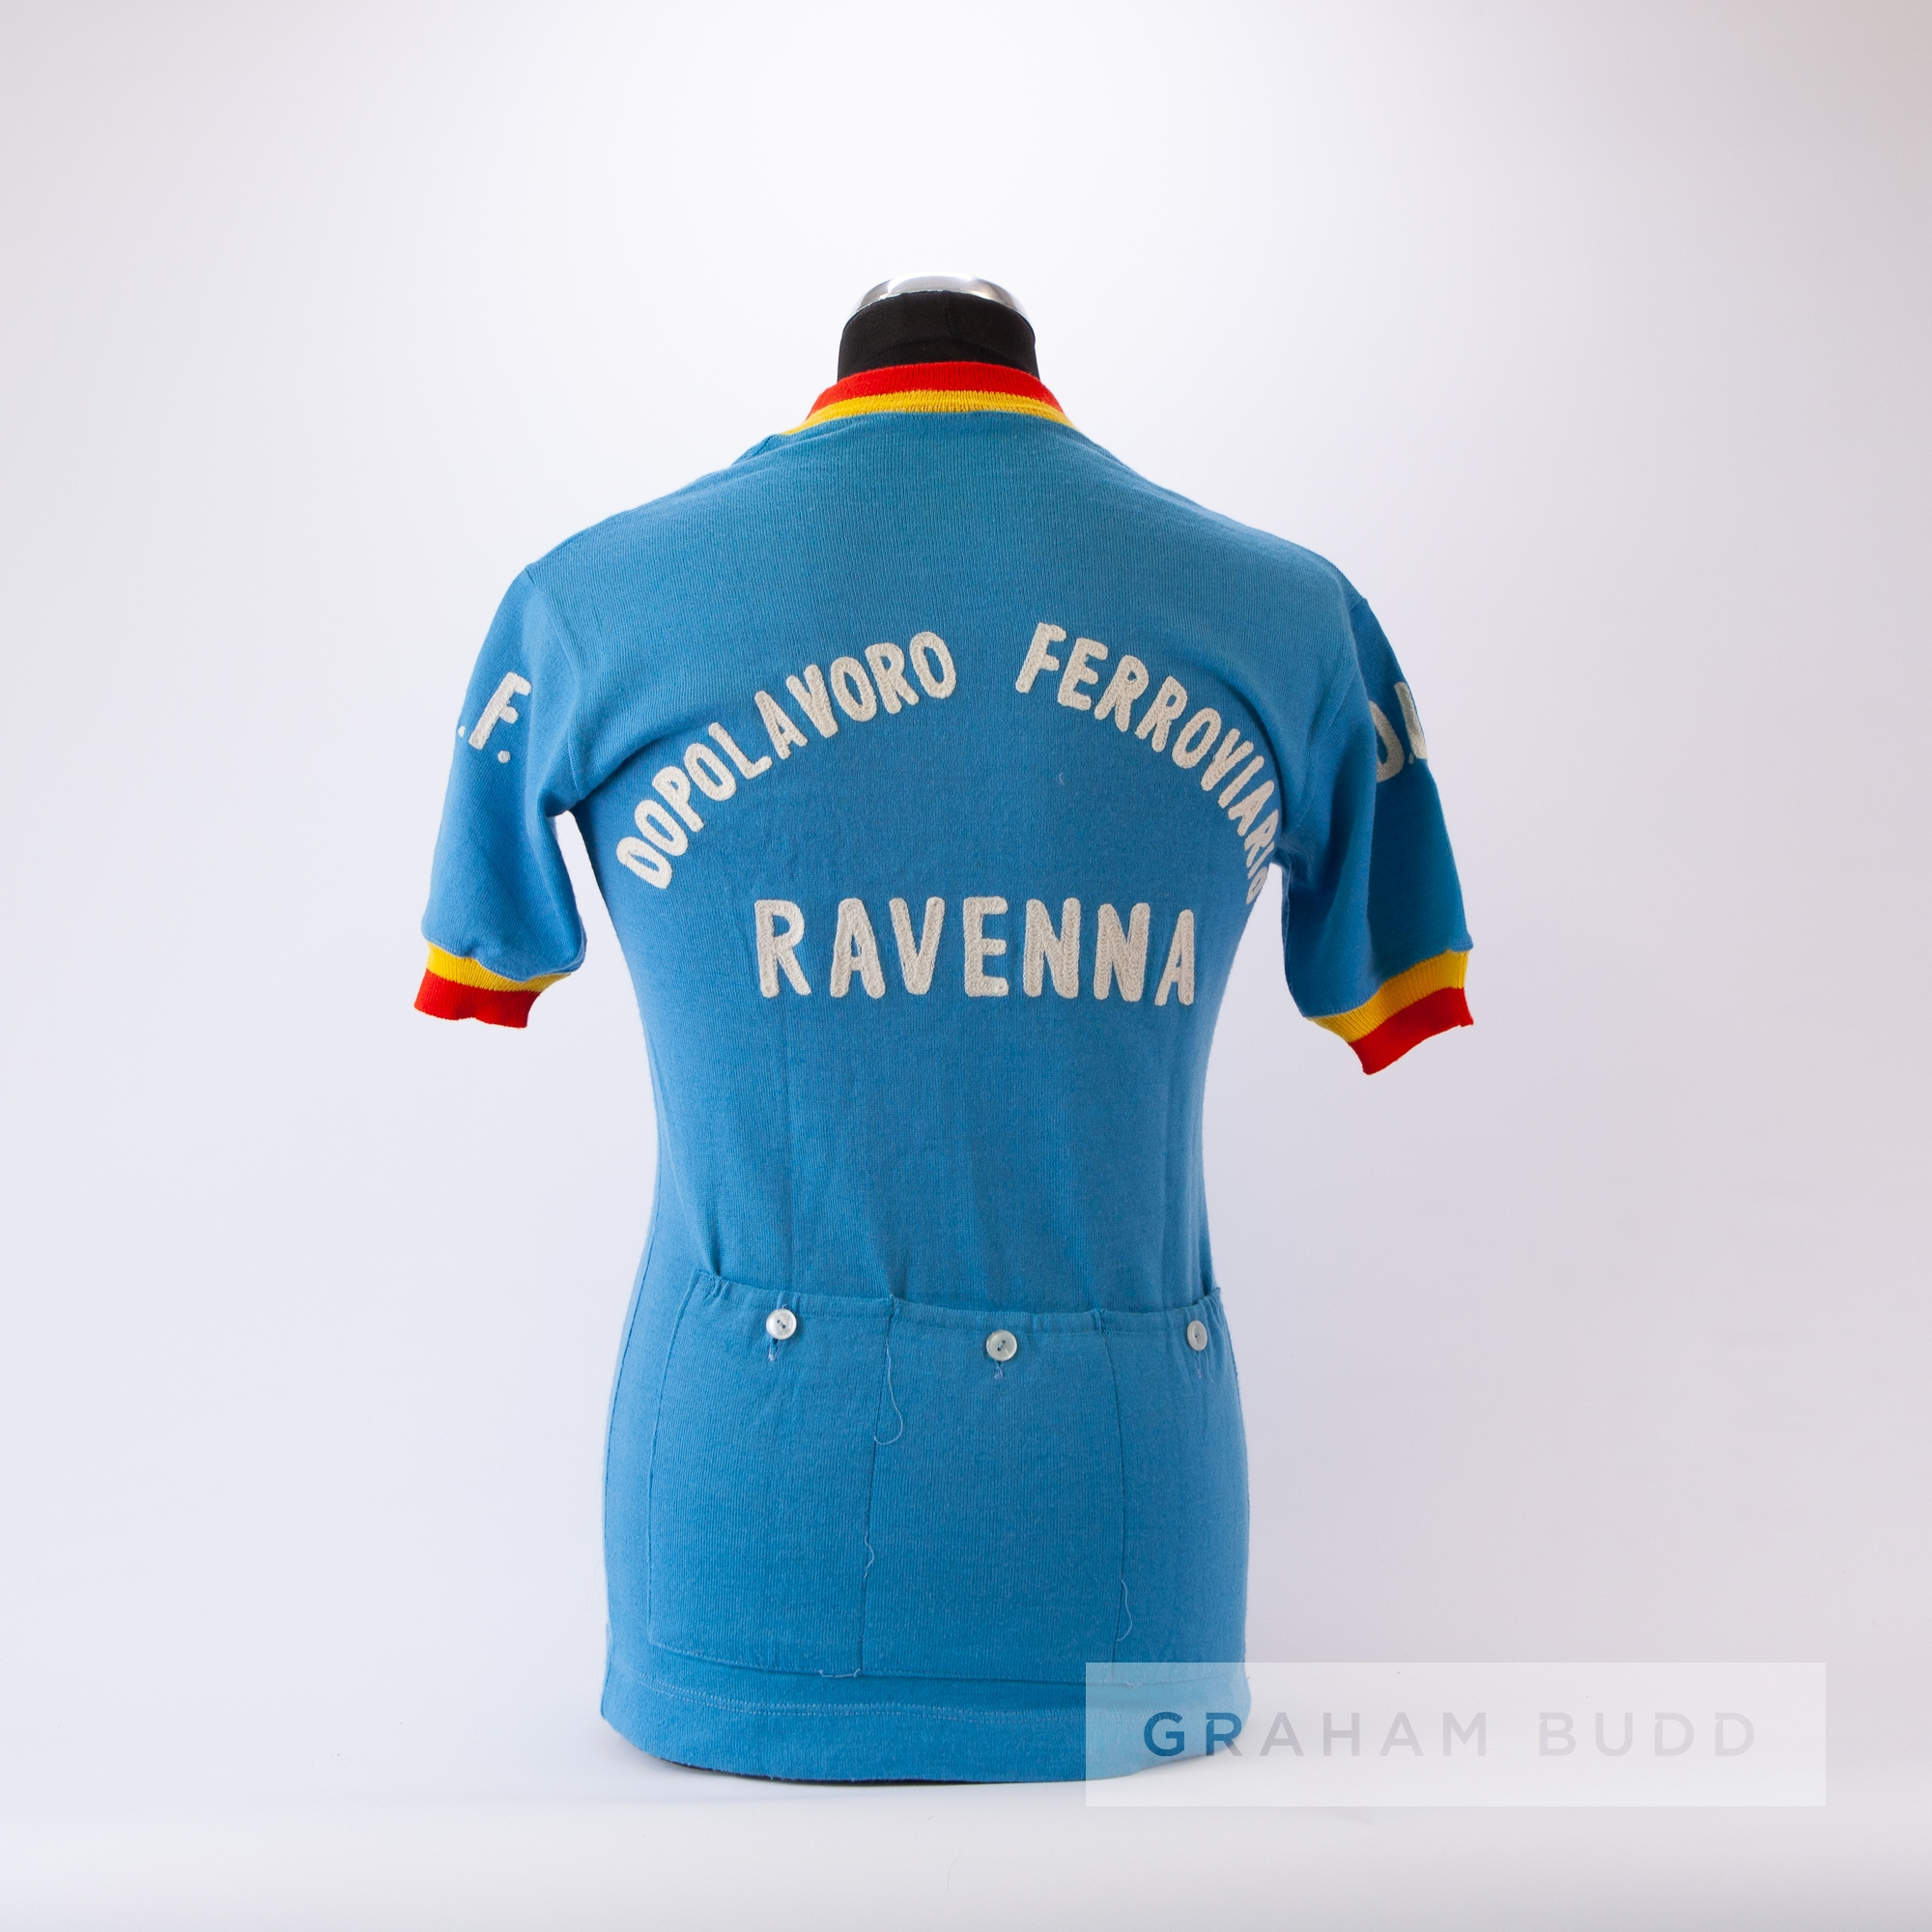 1975 blue, yellow and red vintage Dopolavoro Ferroviario Ravenna Italian Cycling team race jersey, - Image 4 of 4